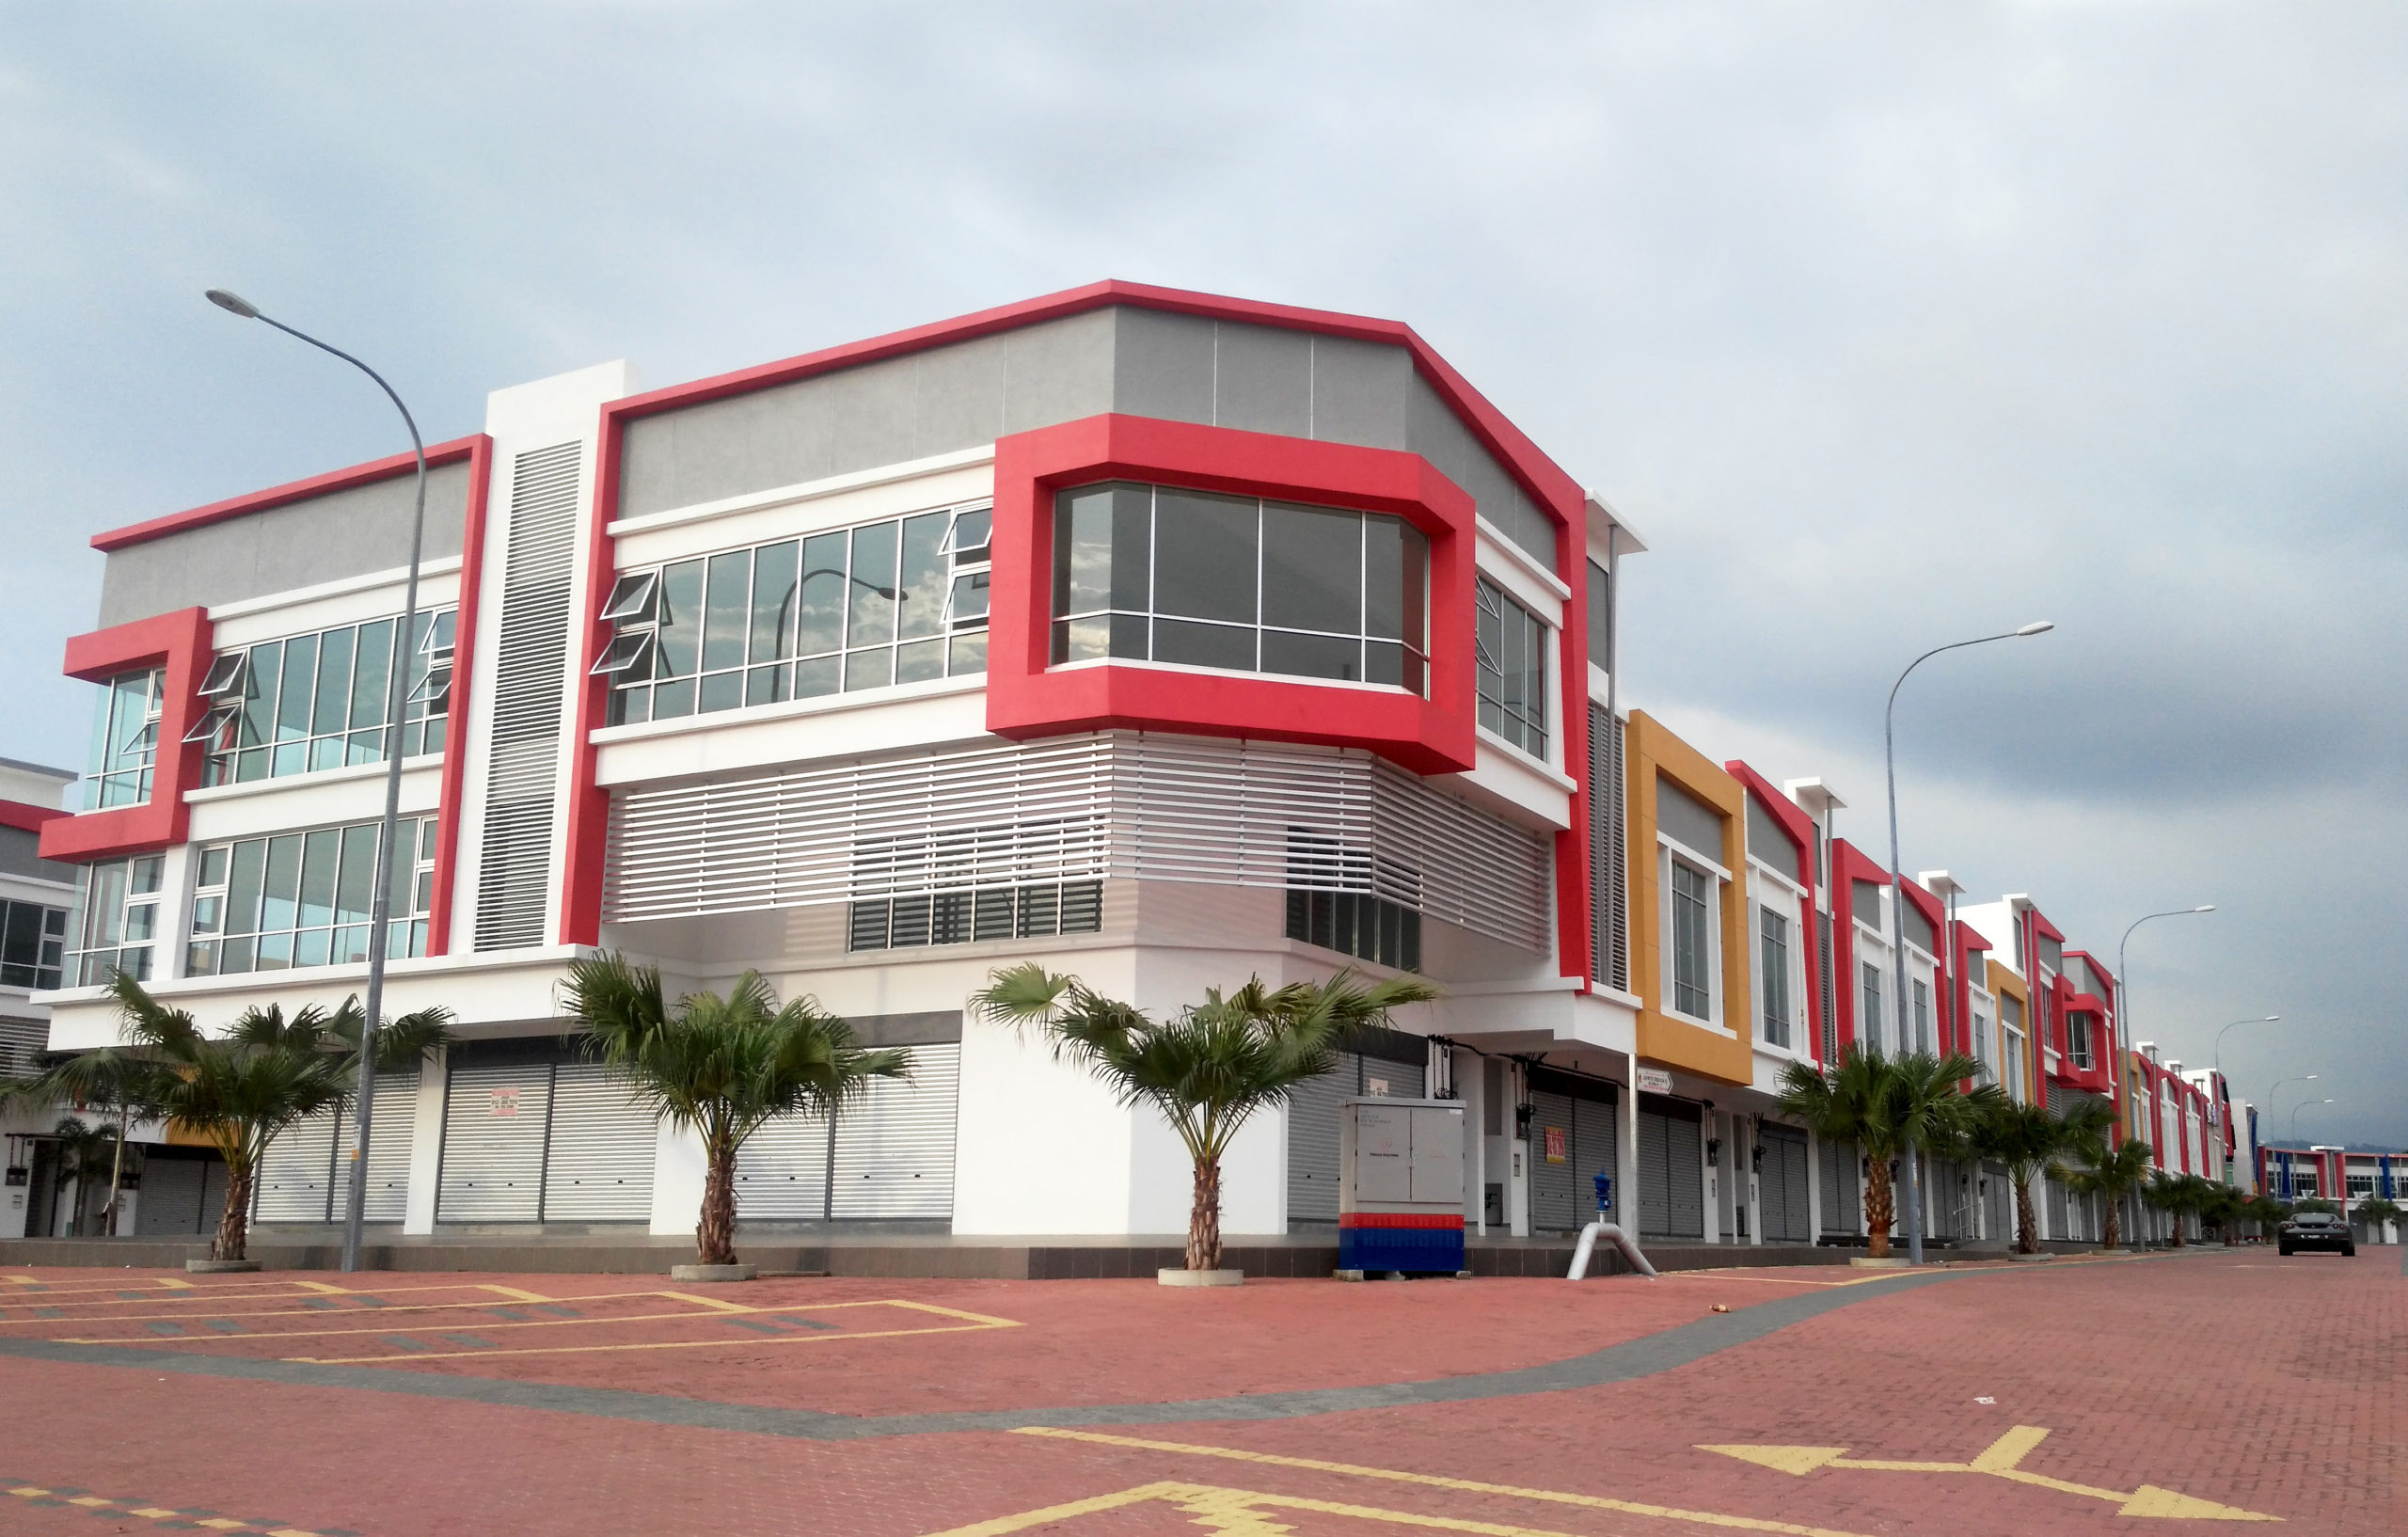 Innovative architectural design for row of business buildings